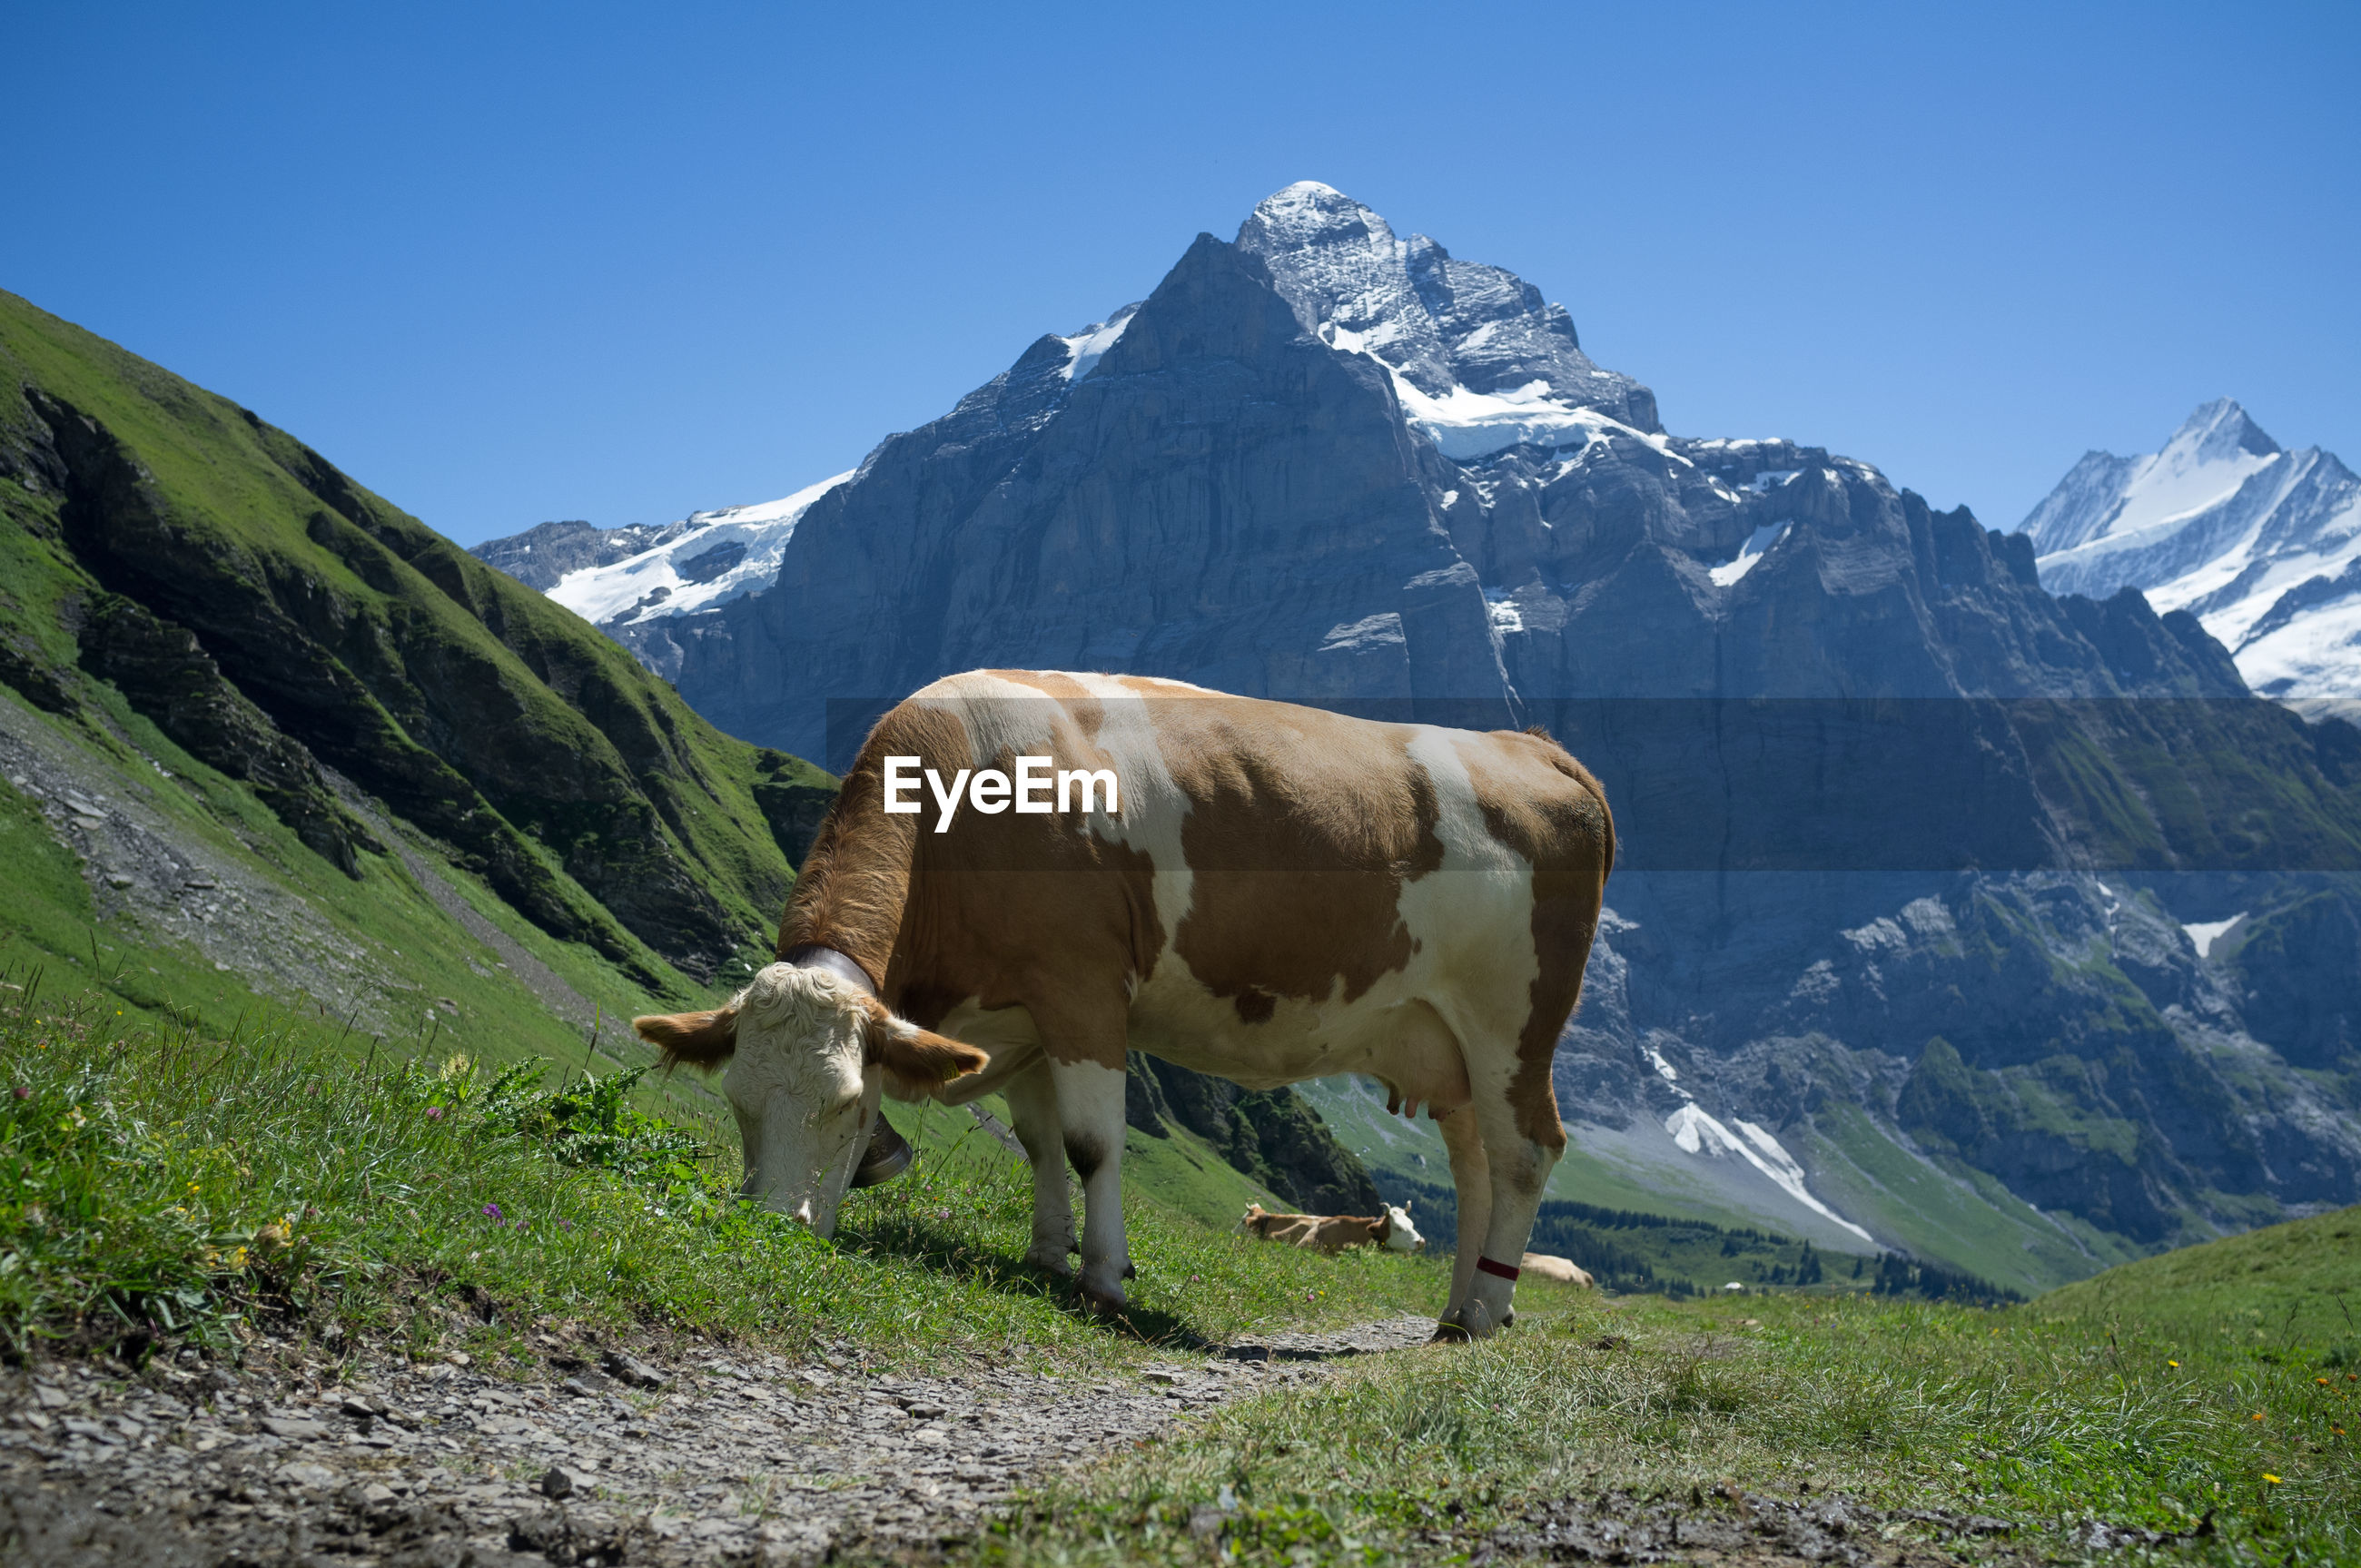 Cow grazing on field against mountains during winter